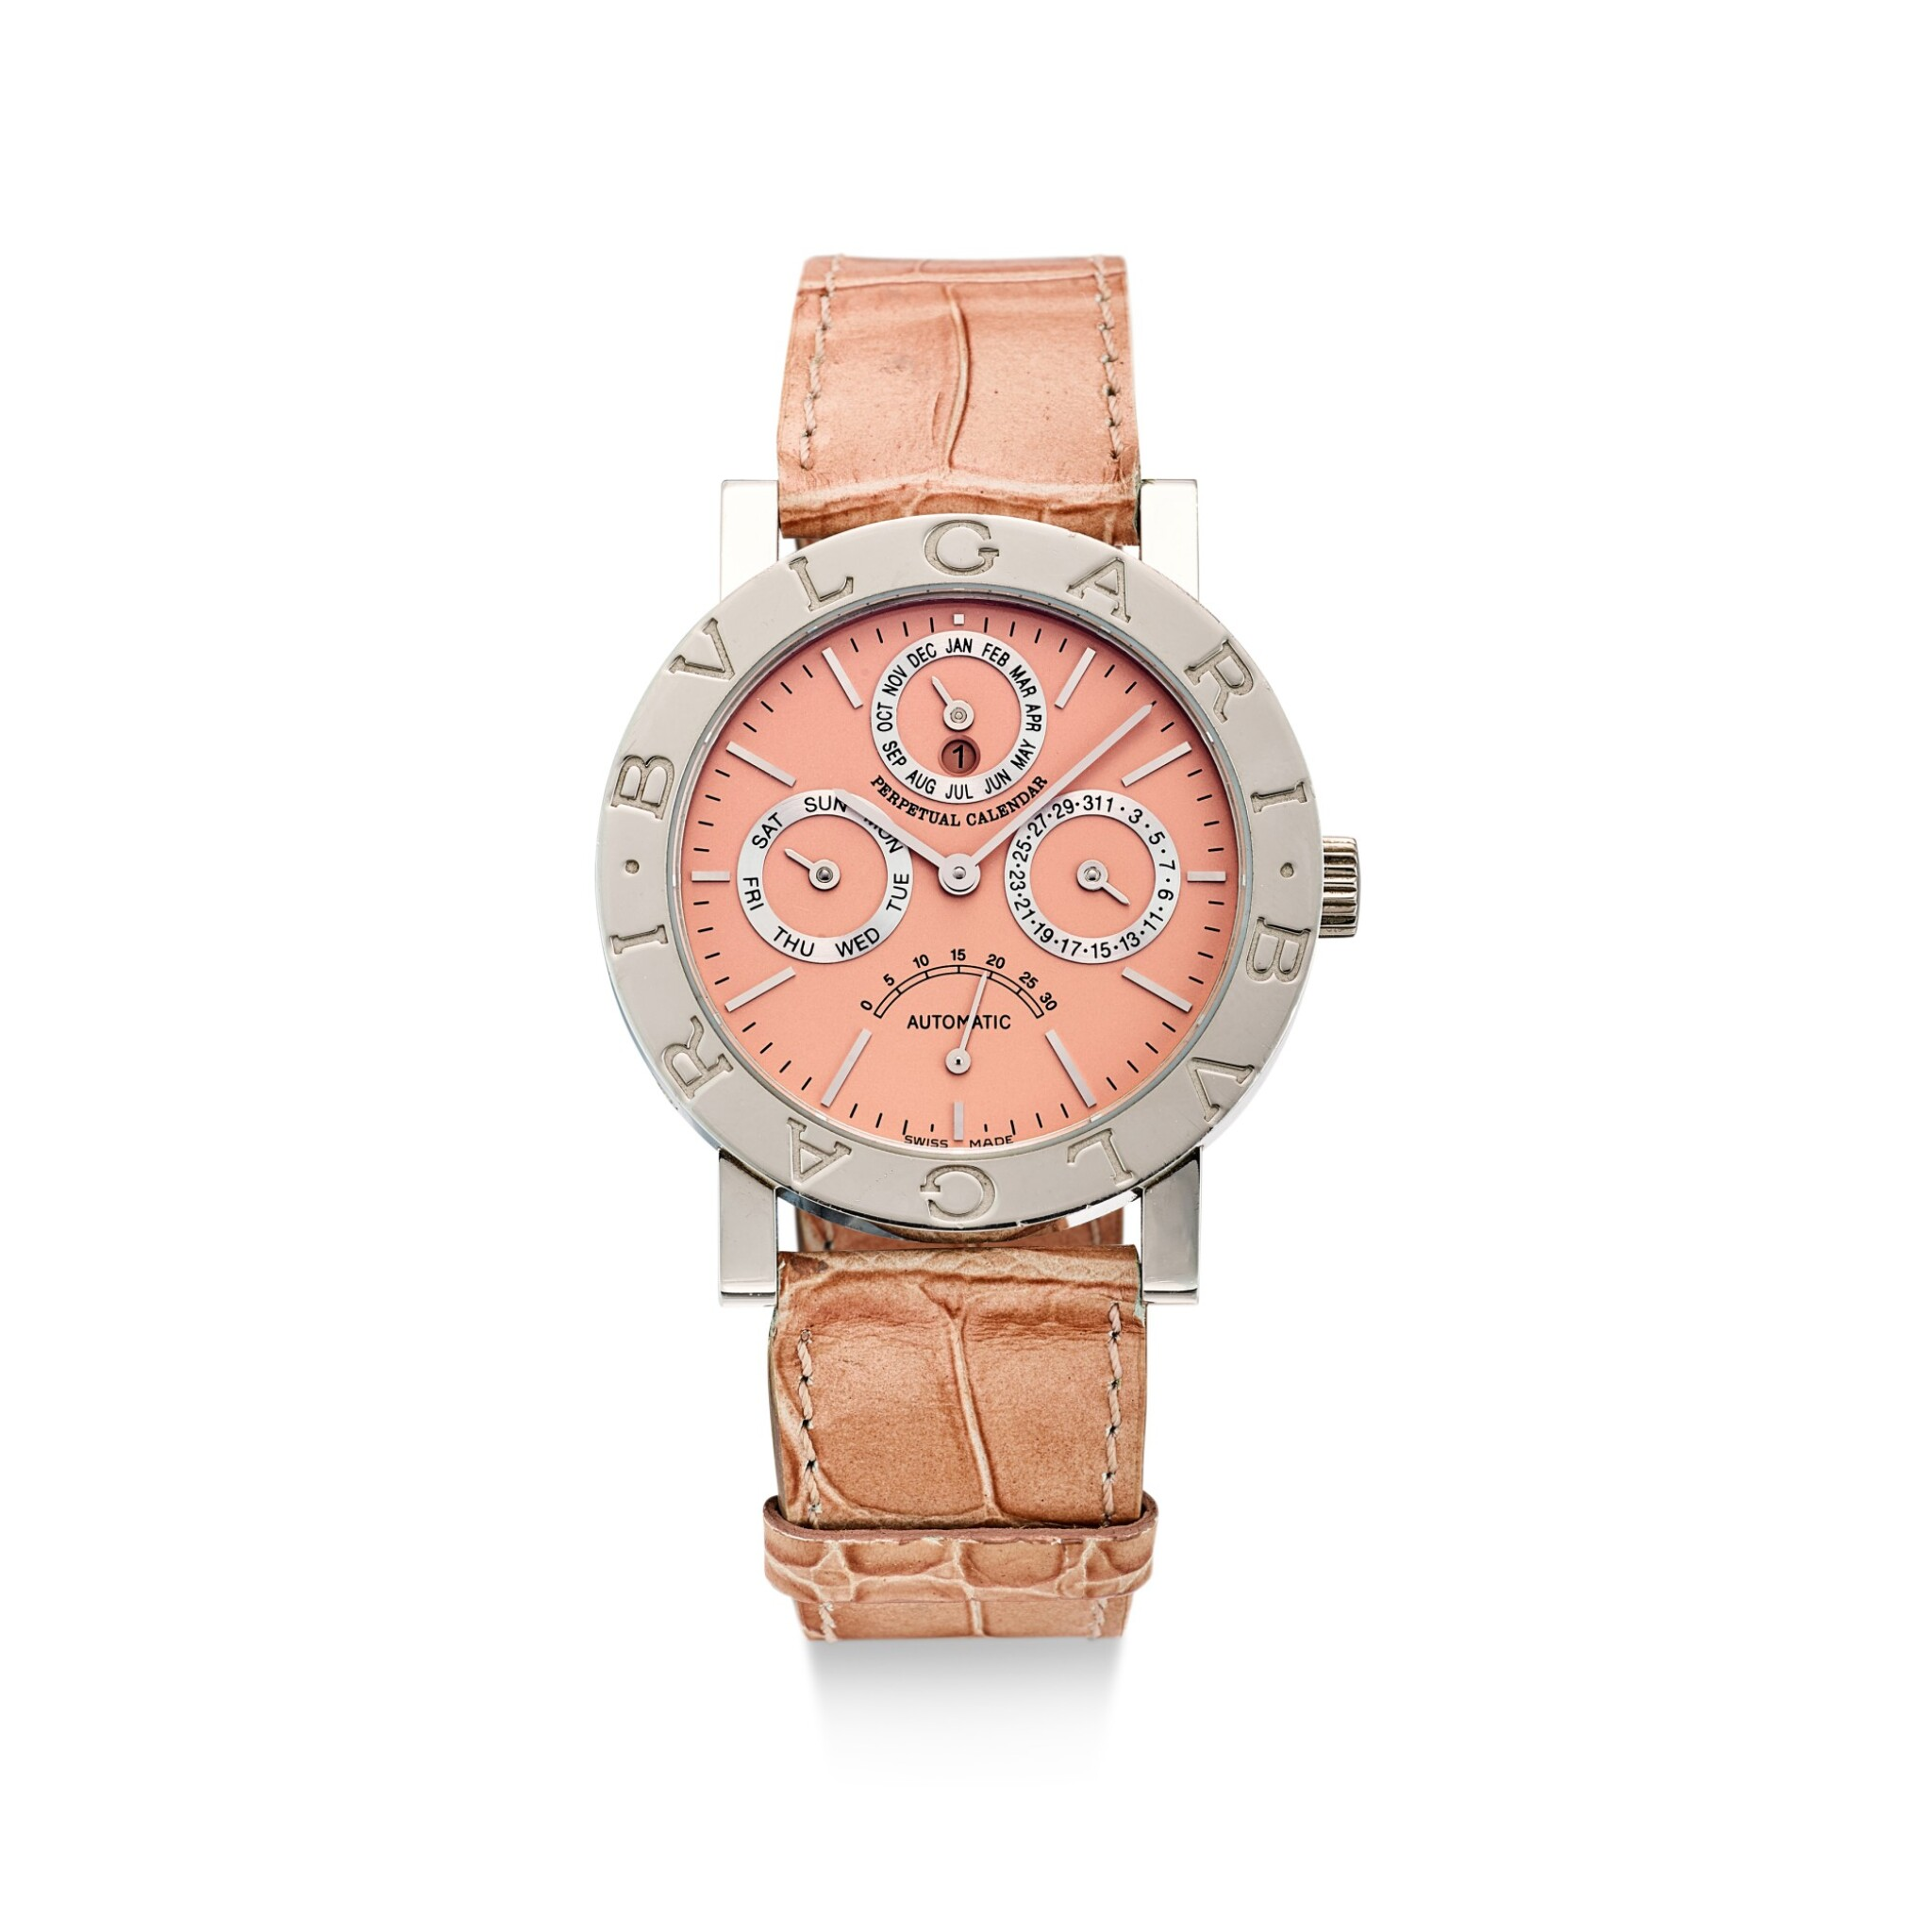 BULGARI | CALENDRIER PERPÉTUEL, REFERENCE BB 38 PL PC A LIMITED EDITION PLATINUM PERPETUAL CALENDAR WRISTWATCH WITH RETROGRADE SECONDS AND LEAP YEAR INDICATION, CIRCA 2000